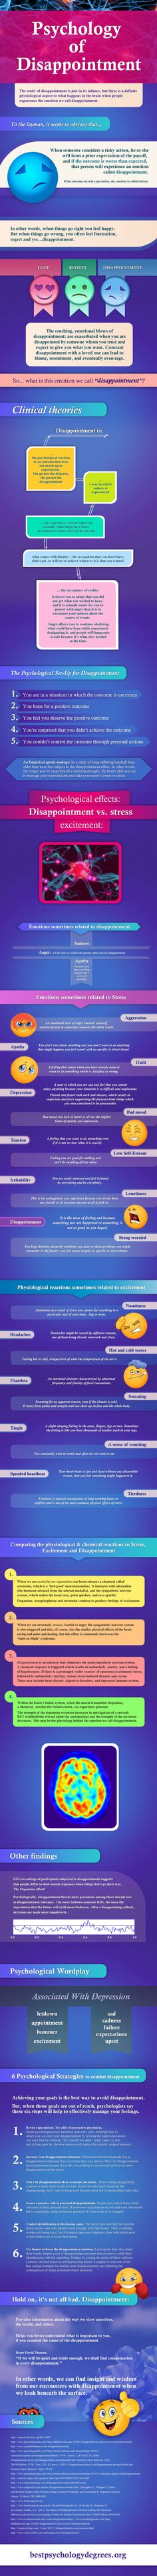 The Psychology of Disappointment Infographic